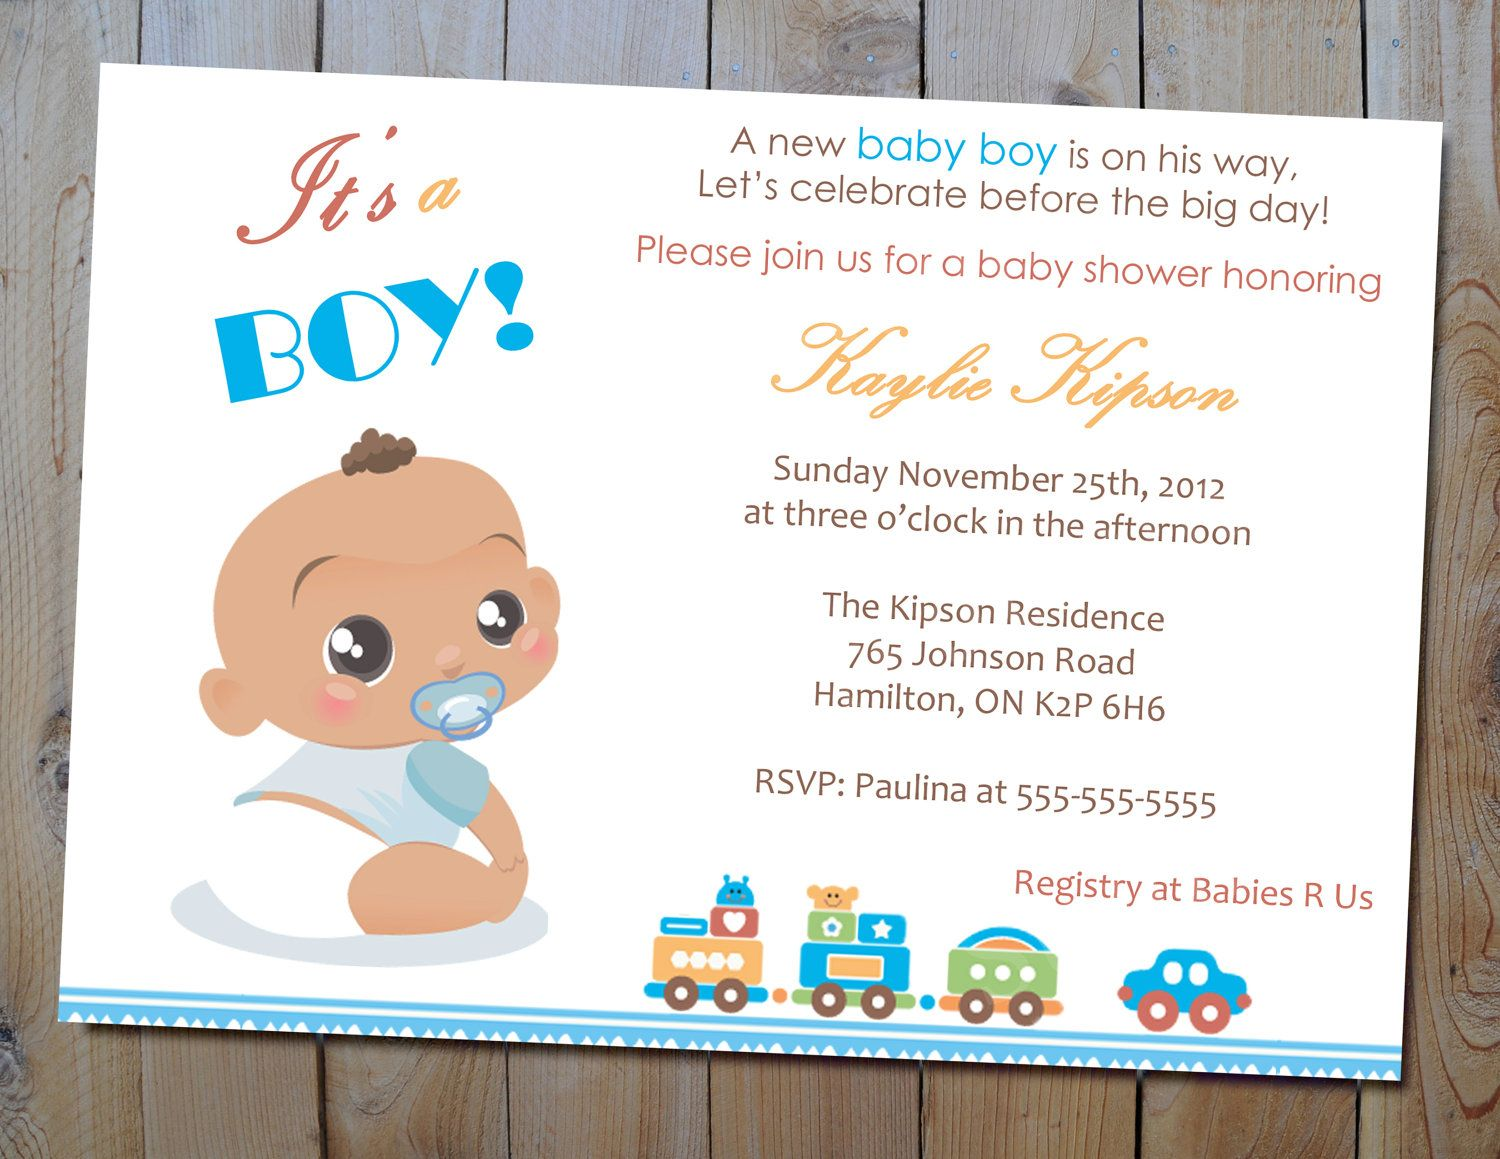 How to create baby shower invites for boy free ideas invitstiond how to create baby shower invites for boy free ideas filmwisefo